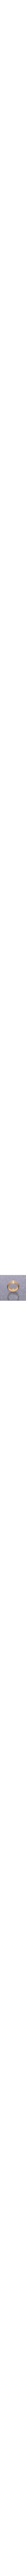 Yellow Gold 14k Wedding Band